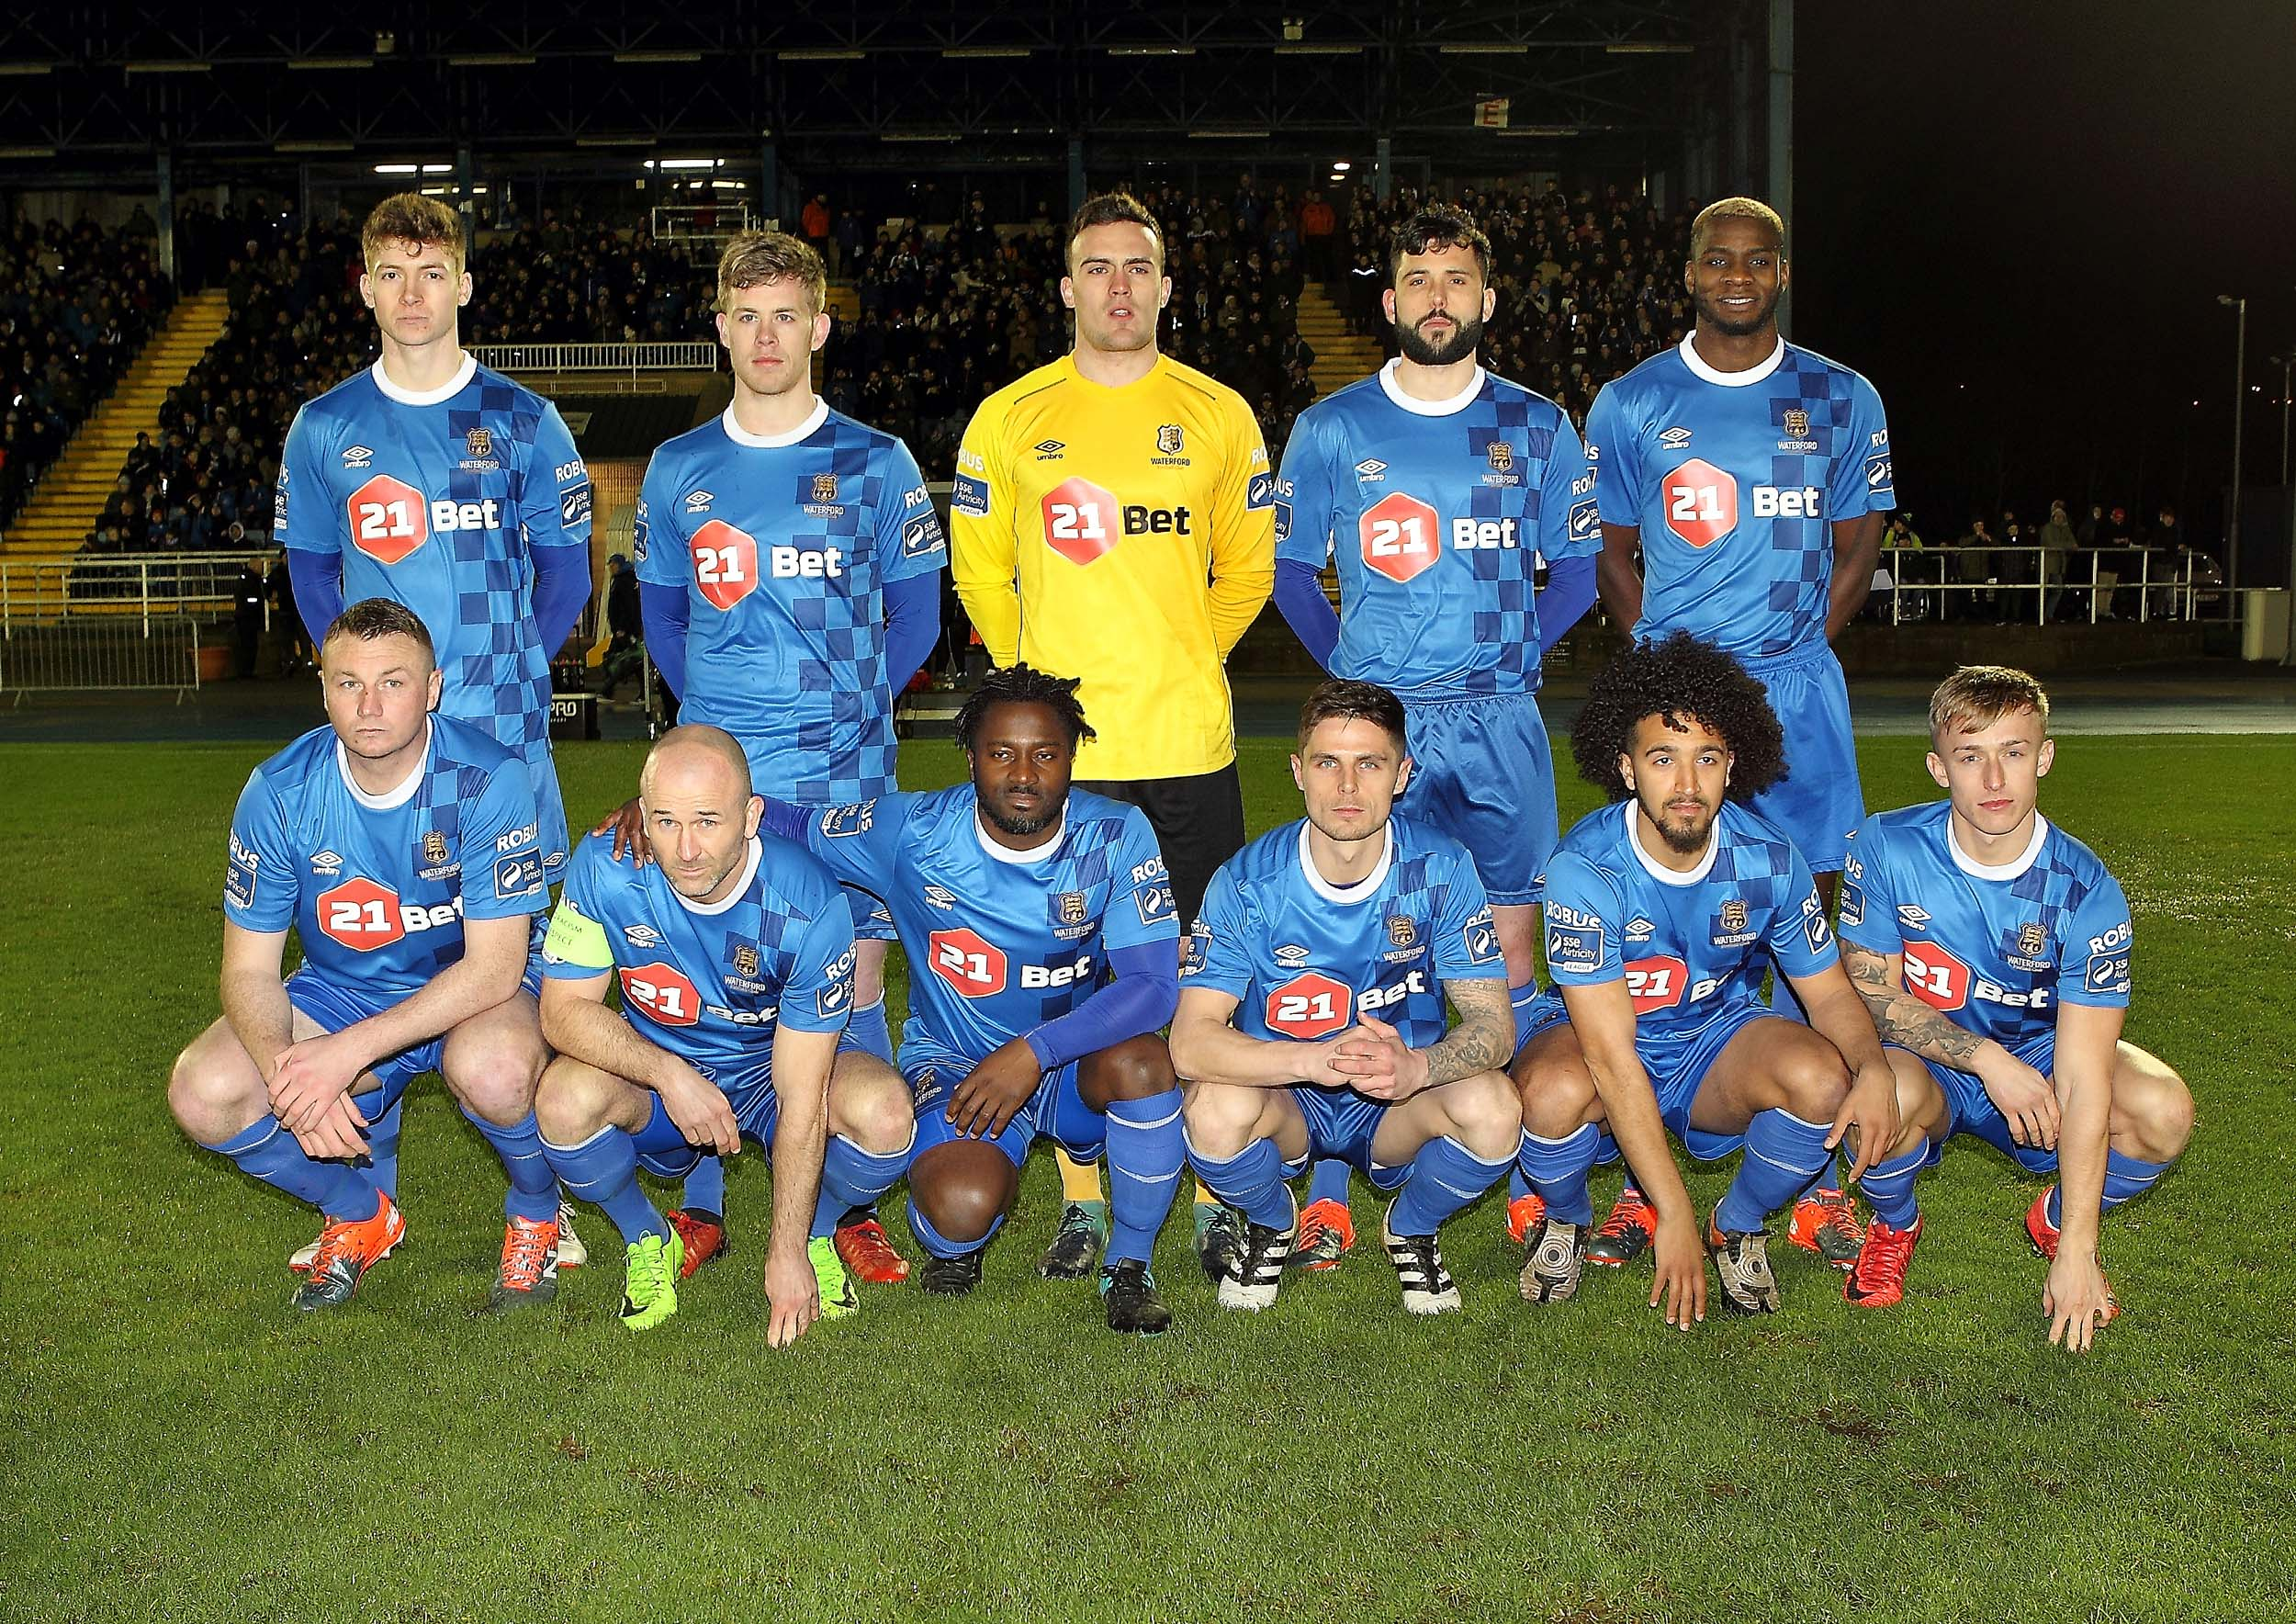 Waterford FC welcome St. Patrick's Athletic to the RSC this evening